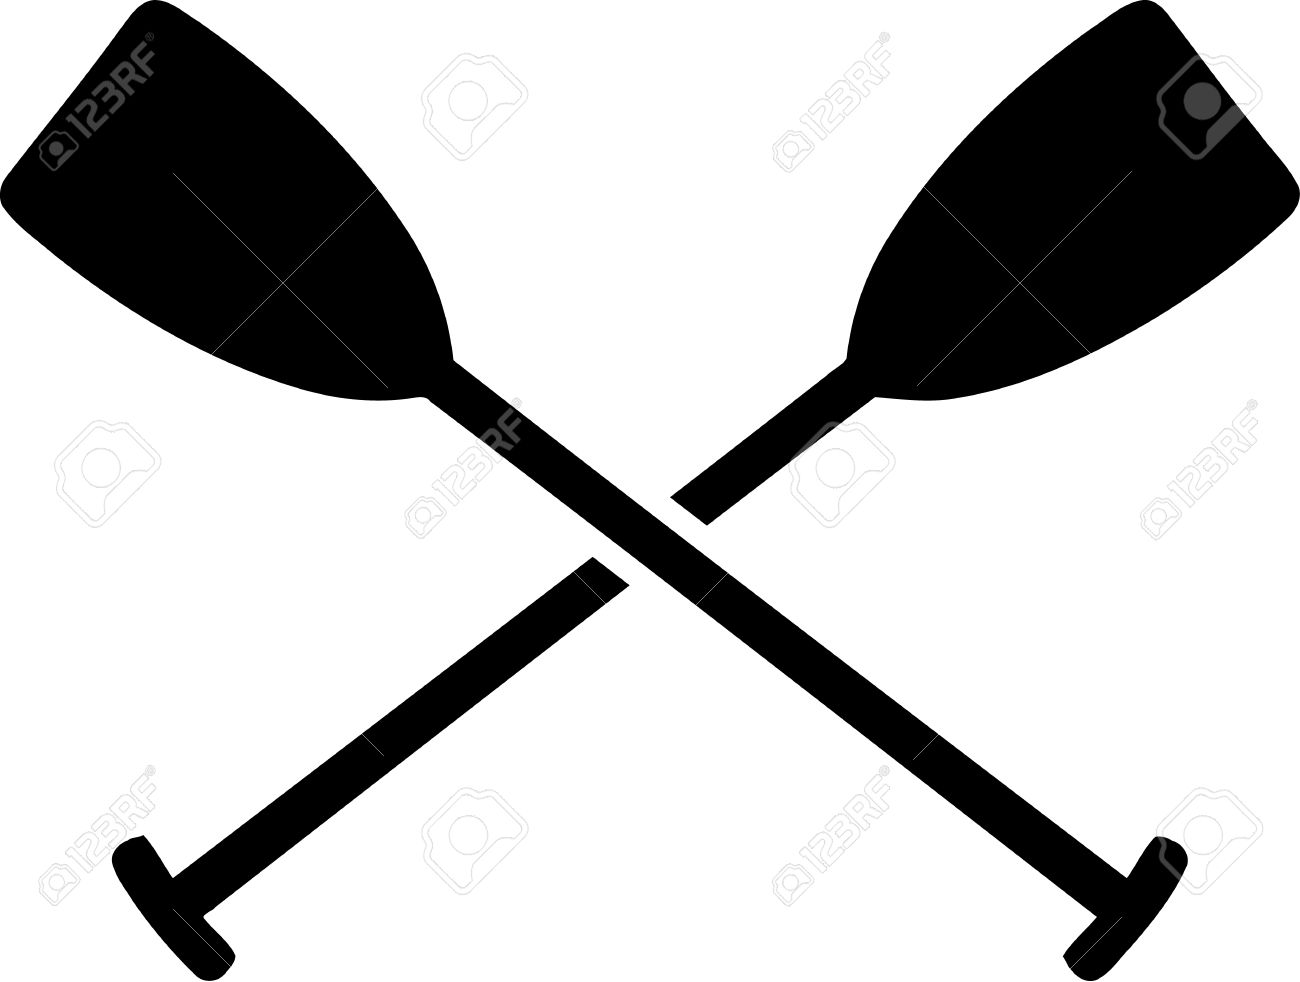 281 Paddle free clipart.